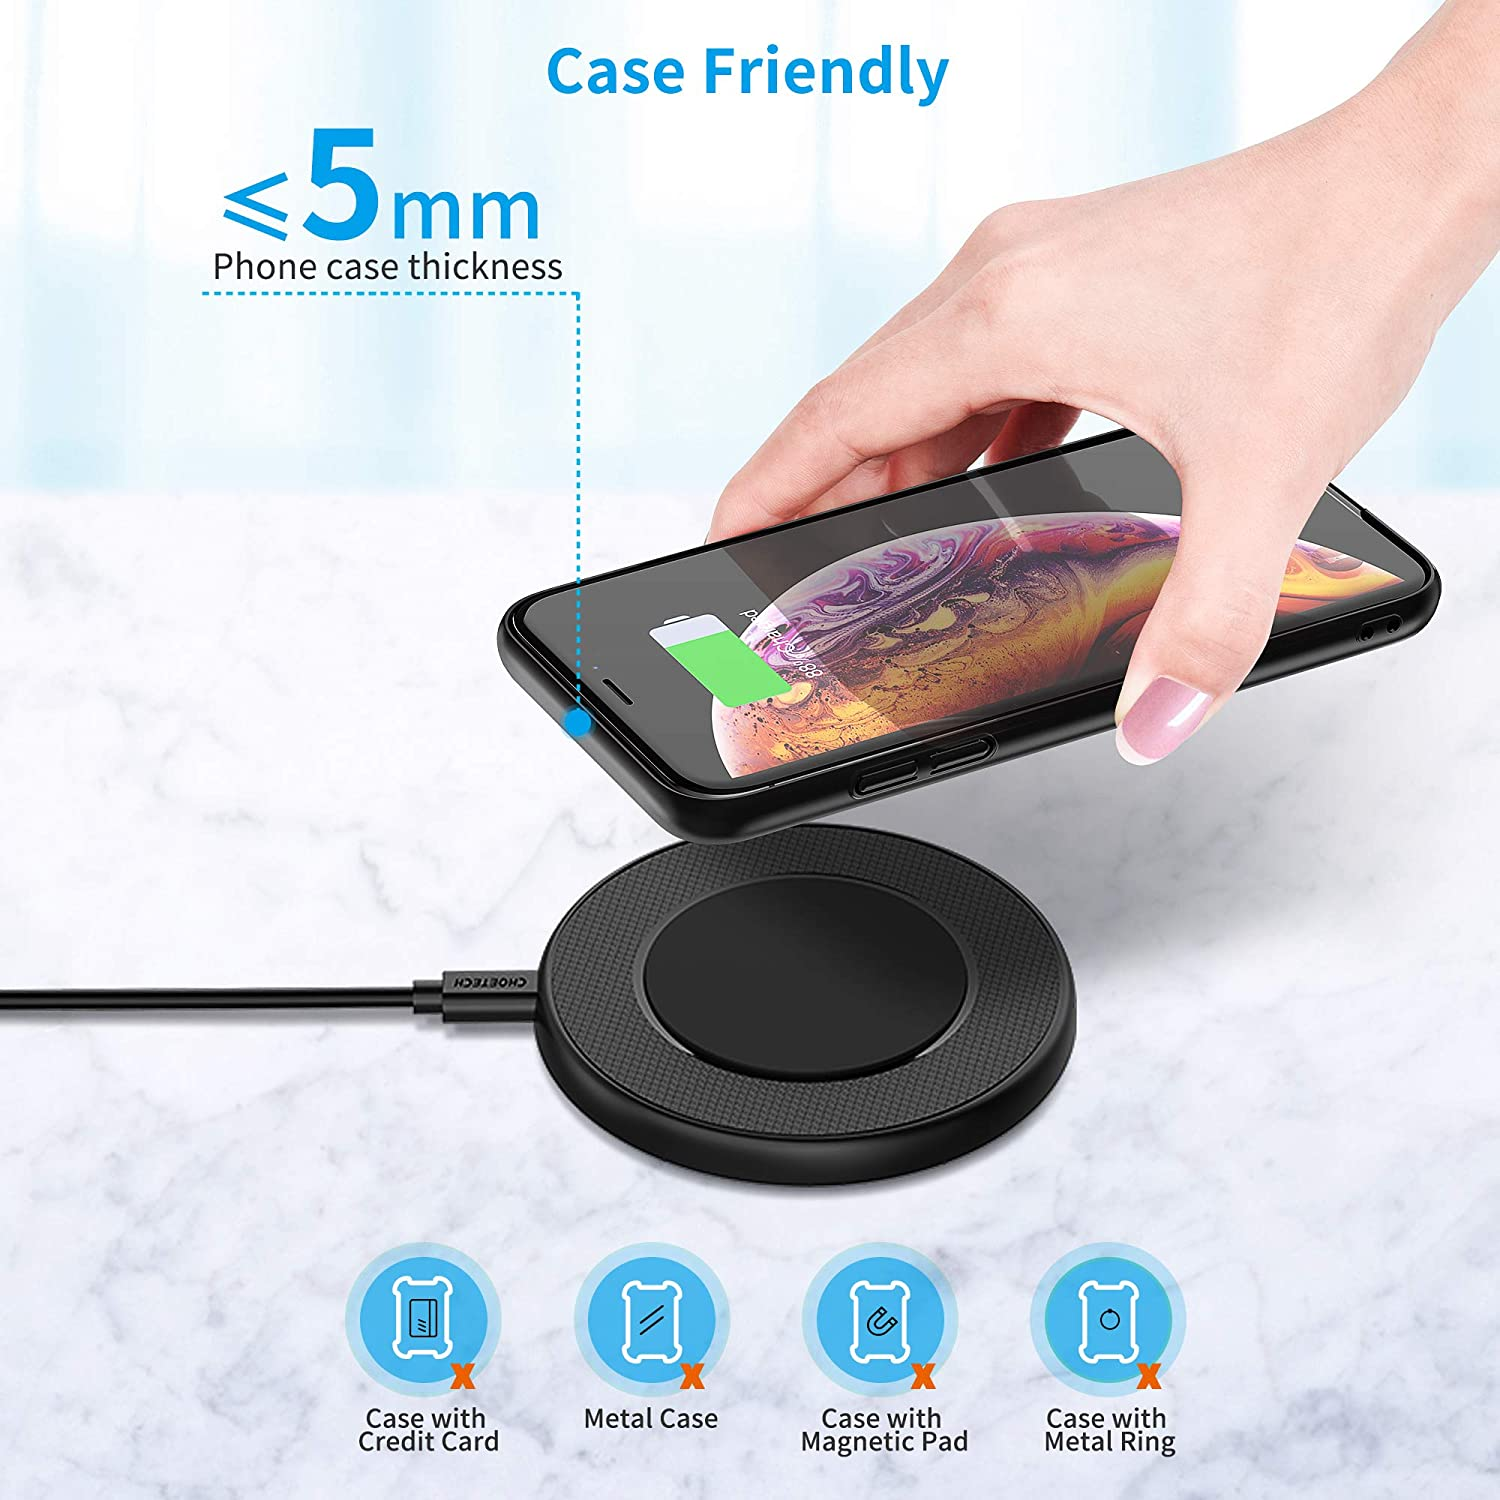 AirPods Pro Galaxy Note 10//Note 10+ //S20 //S20+ //S10 CHOETECH Wireless Charger Pad No AC Adapter Qi-Certified 10W Max Fast Wireless Charger Compatible with iPhone 11//11 Pro//11 Pro Max//Xs Max//XR//X//8